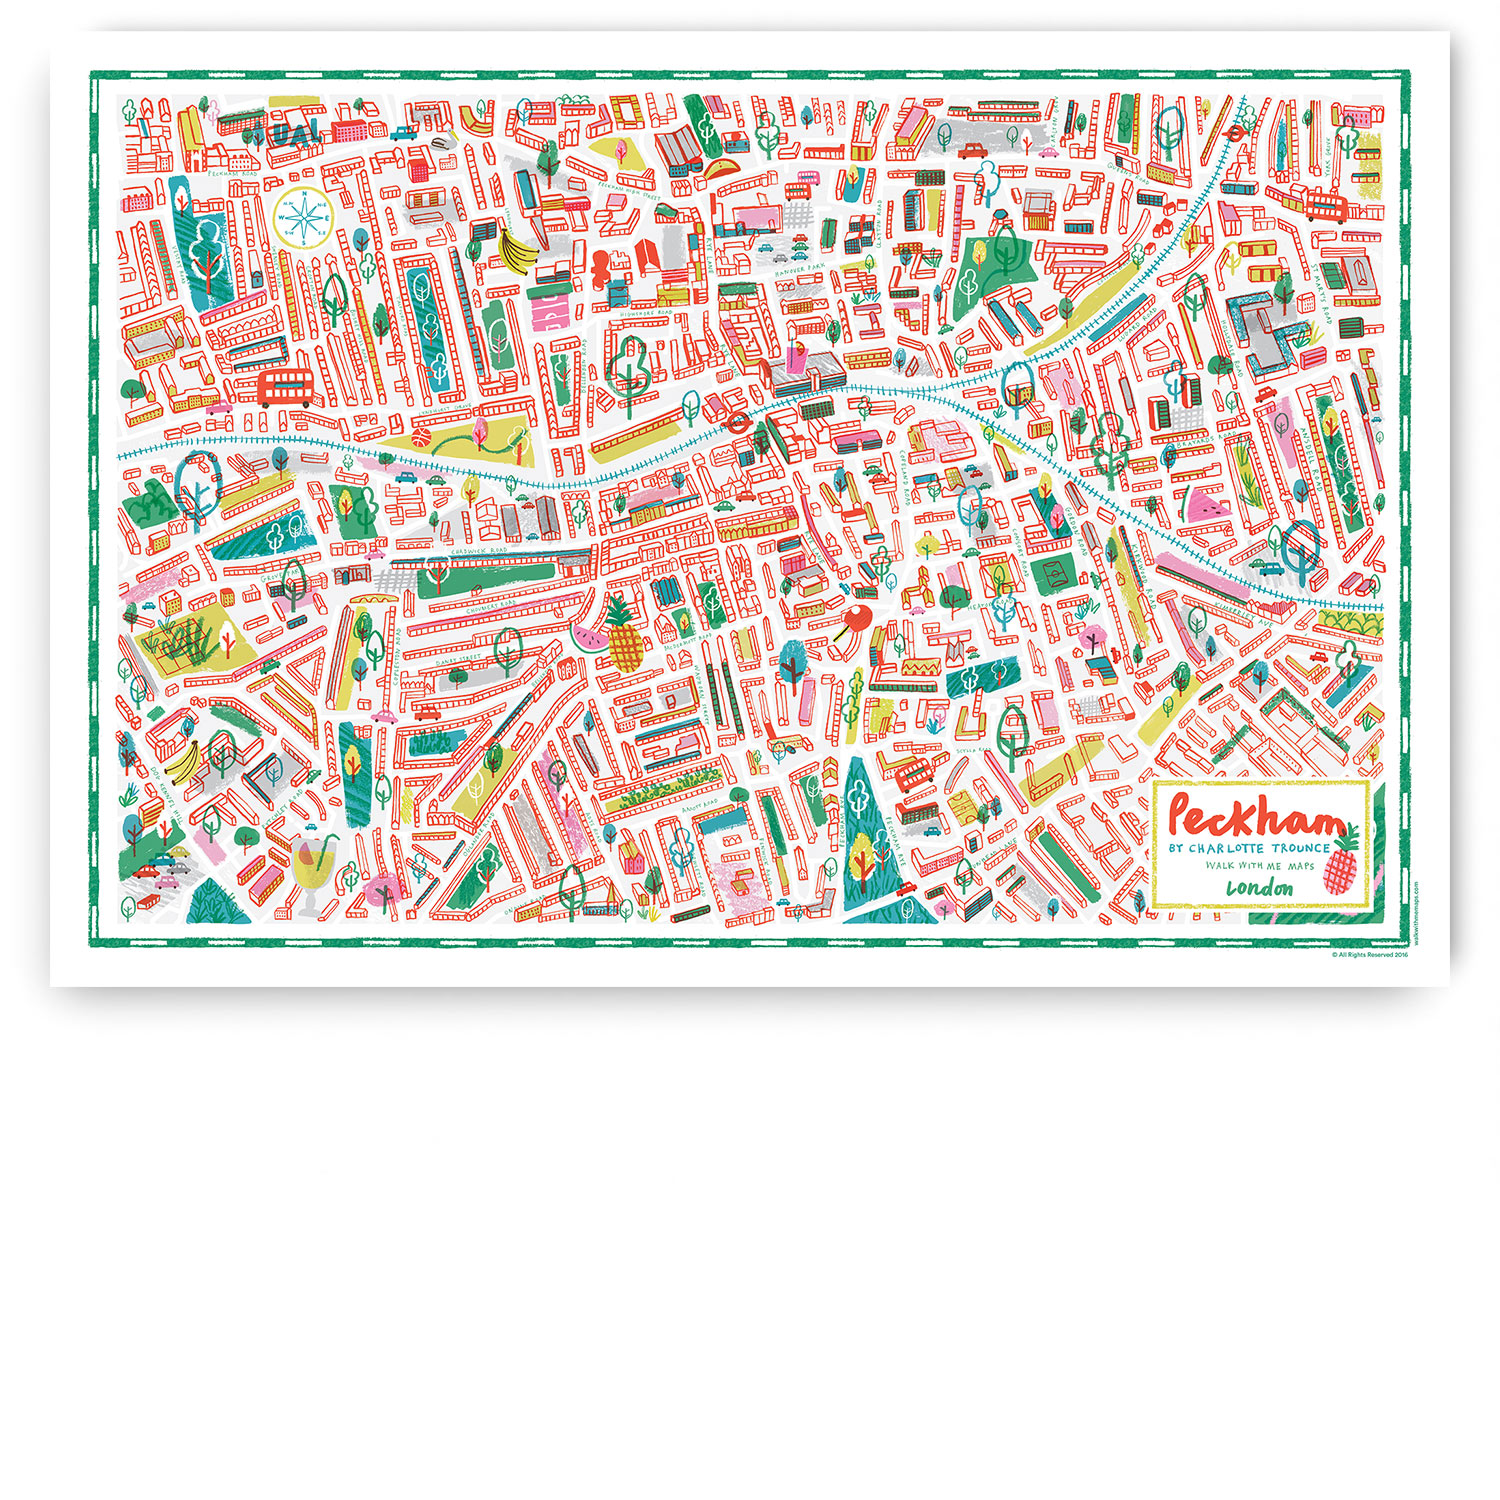 Peckham Illustrated Map Illustrated Map Print on historical map of london, art map of london, painted map of london, business map of london, black map of london, color map of london, interactive map of london, simple map of london, watercolor of london, graphic map of london, travel map of london, childrens map of london,